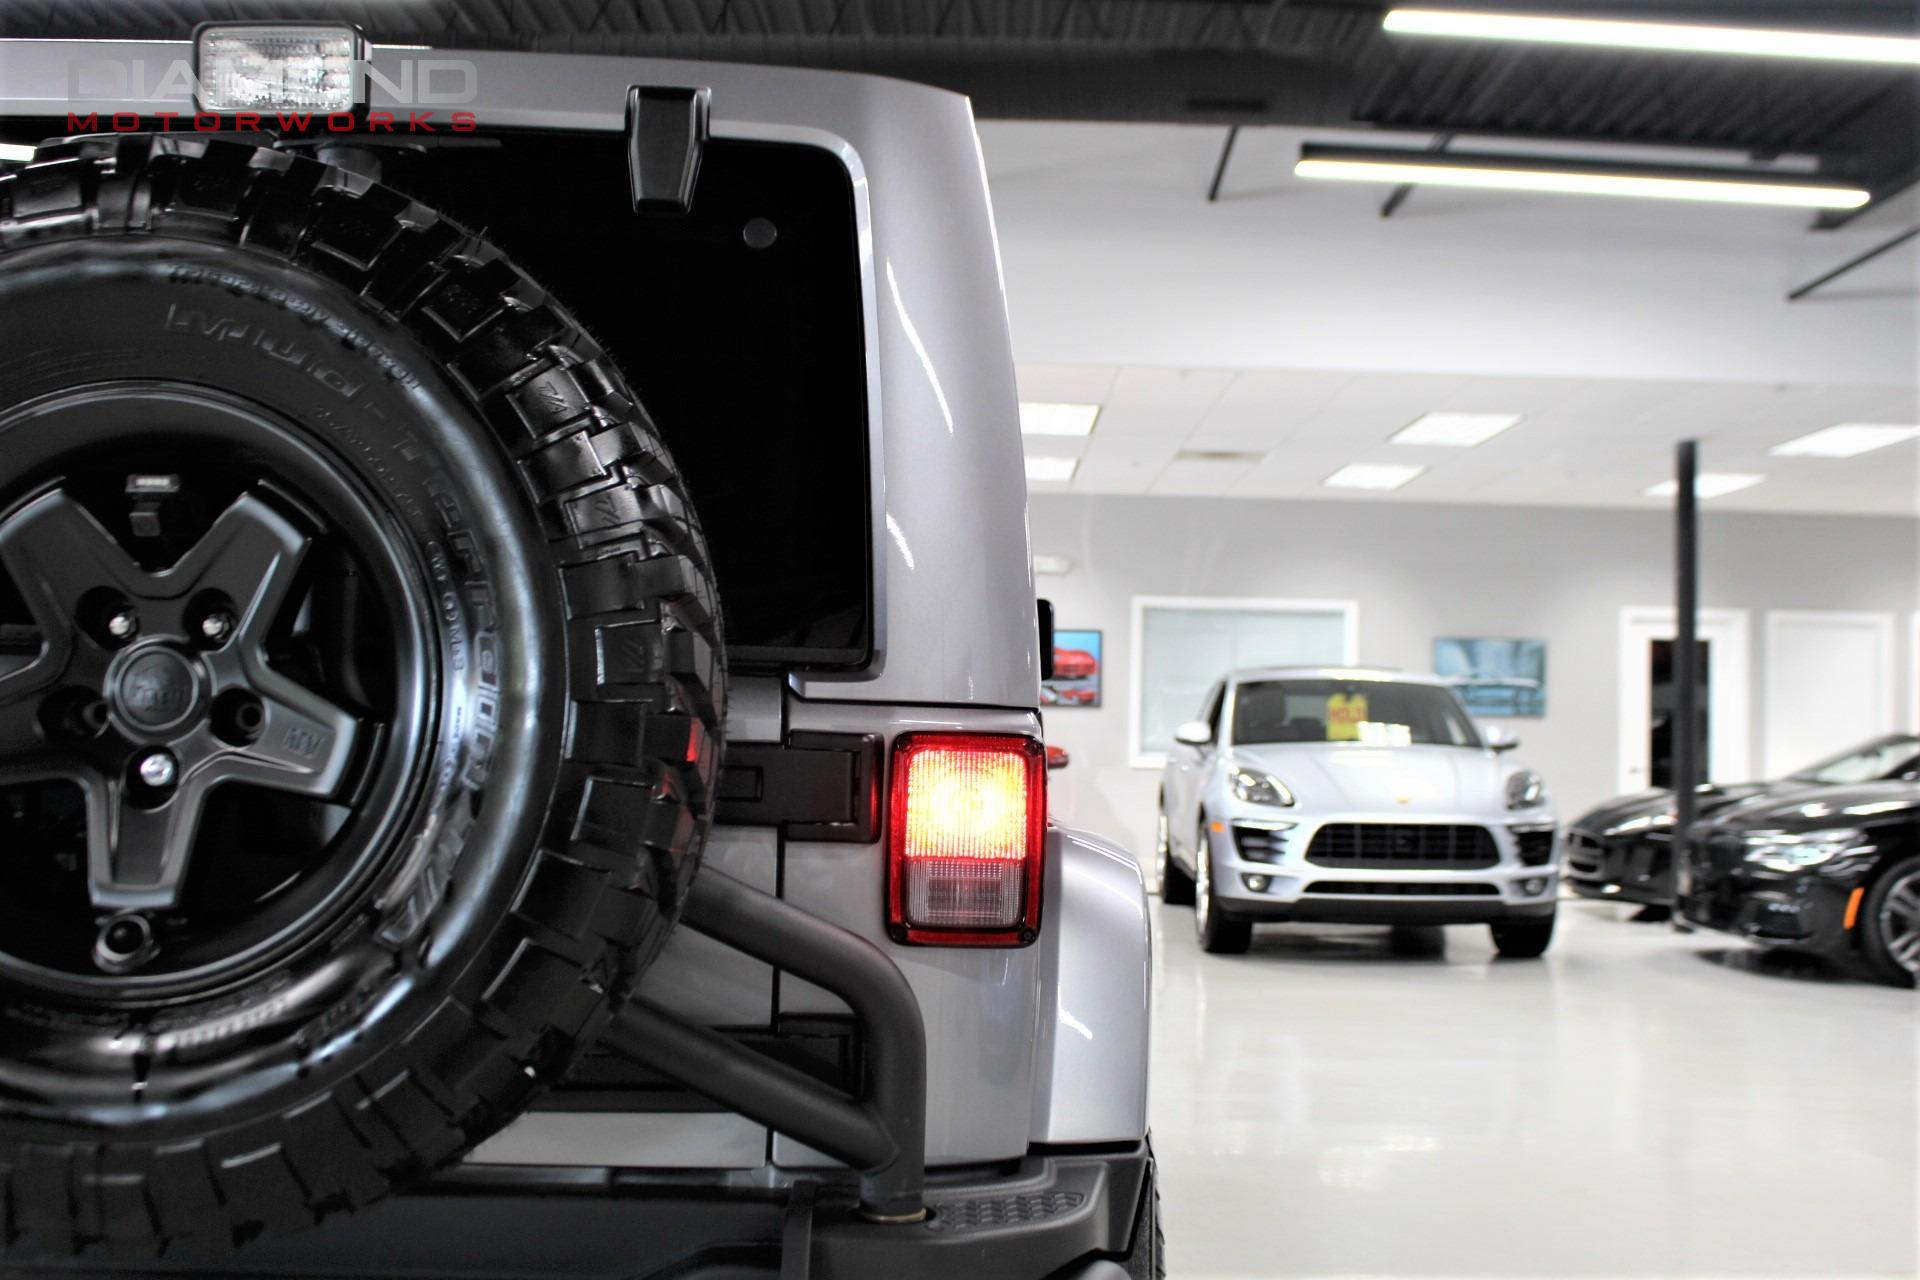 Used-2017-Jeep-Wrangler-Unlimited-Rubicon-AEV-Edition